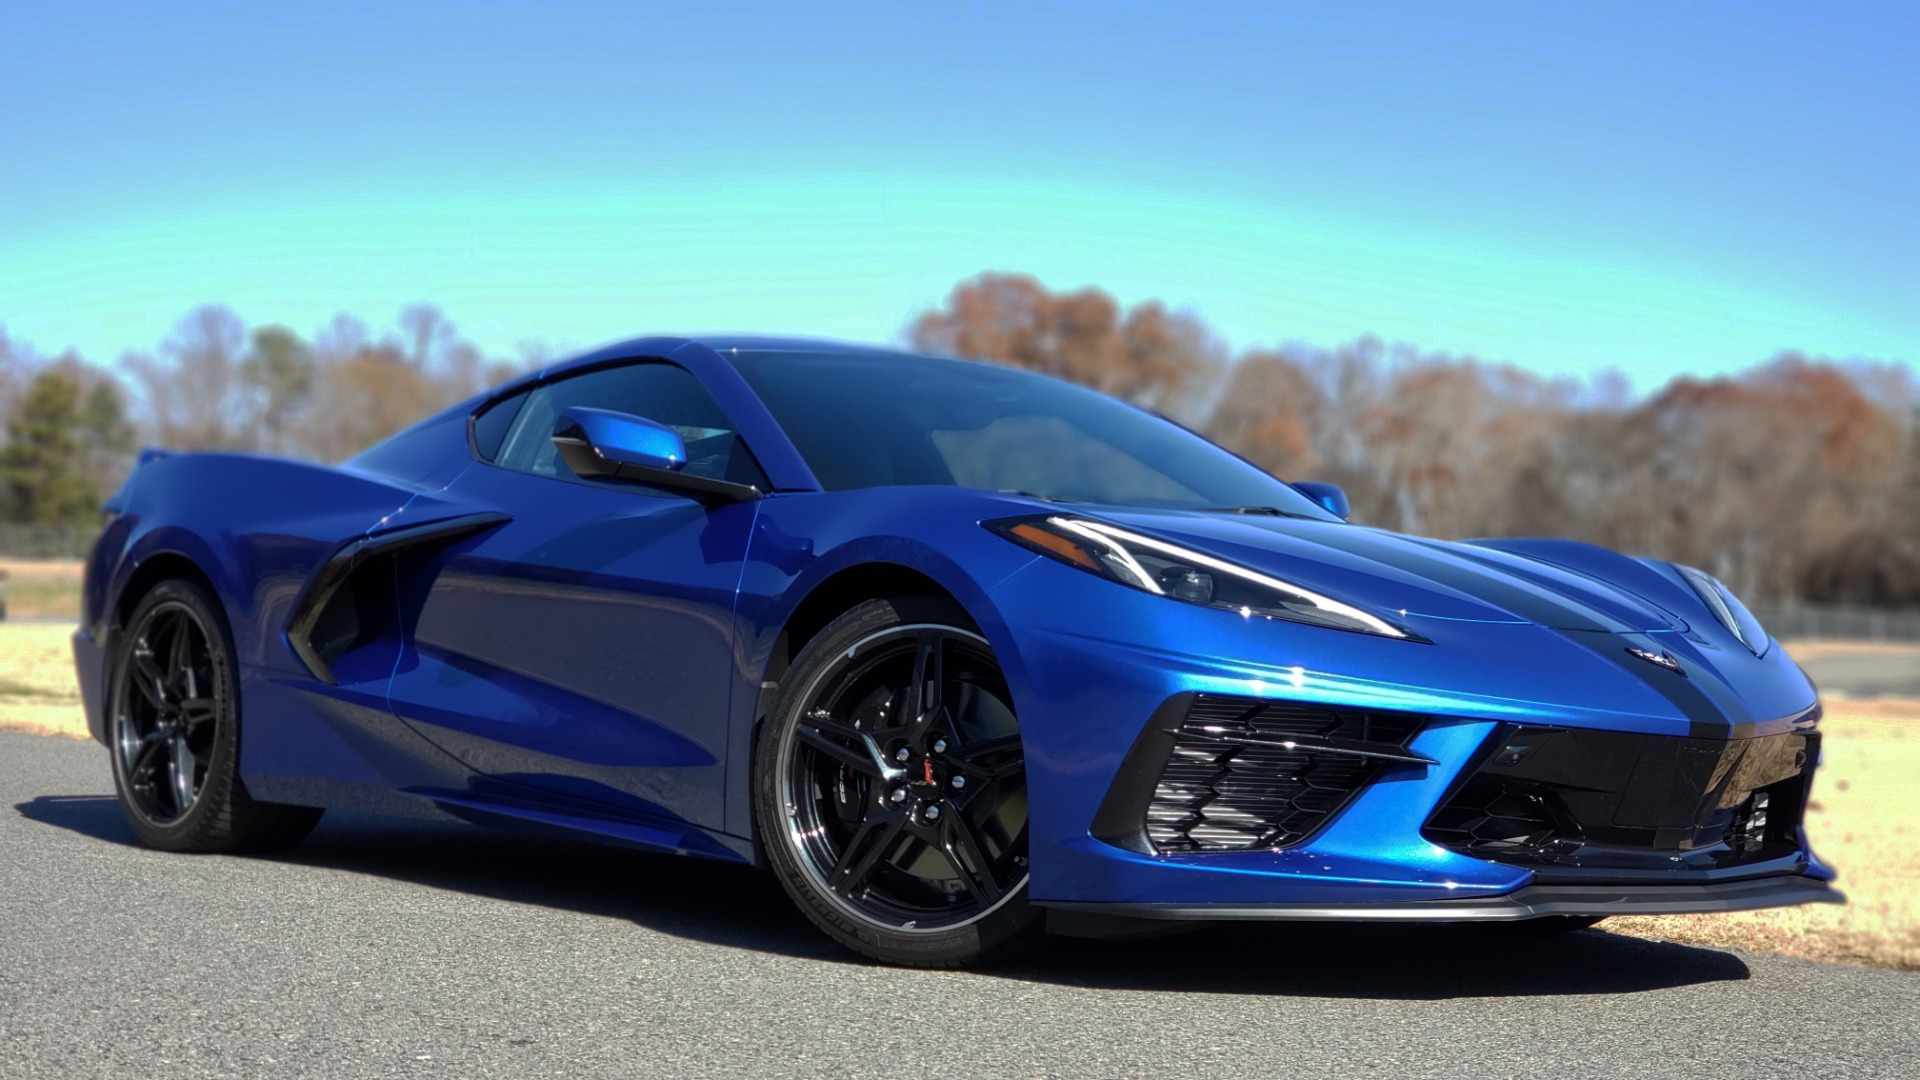 Used 2020 Chevrolet C8 CORVETTE STINGRAY 2LT COUPE / NAV / HUD / BOSE / GT2 SEATS / FRONT LIFT / REARVIEW for sale Sold at Formula Imports in Charlotte NC 28227 3